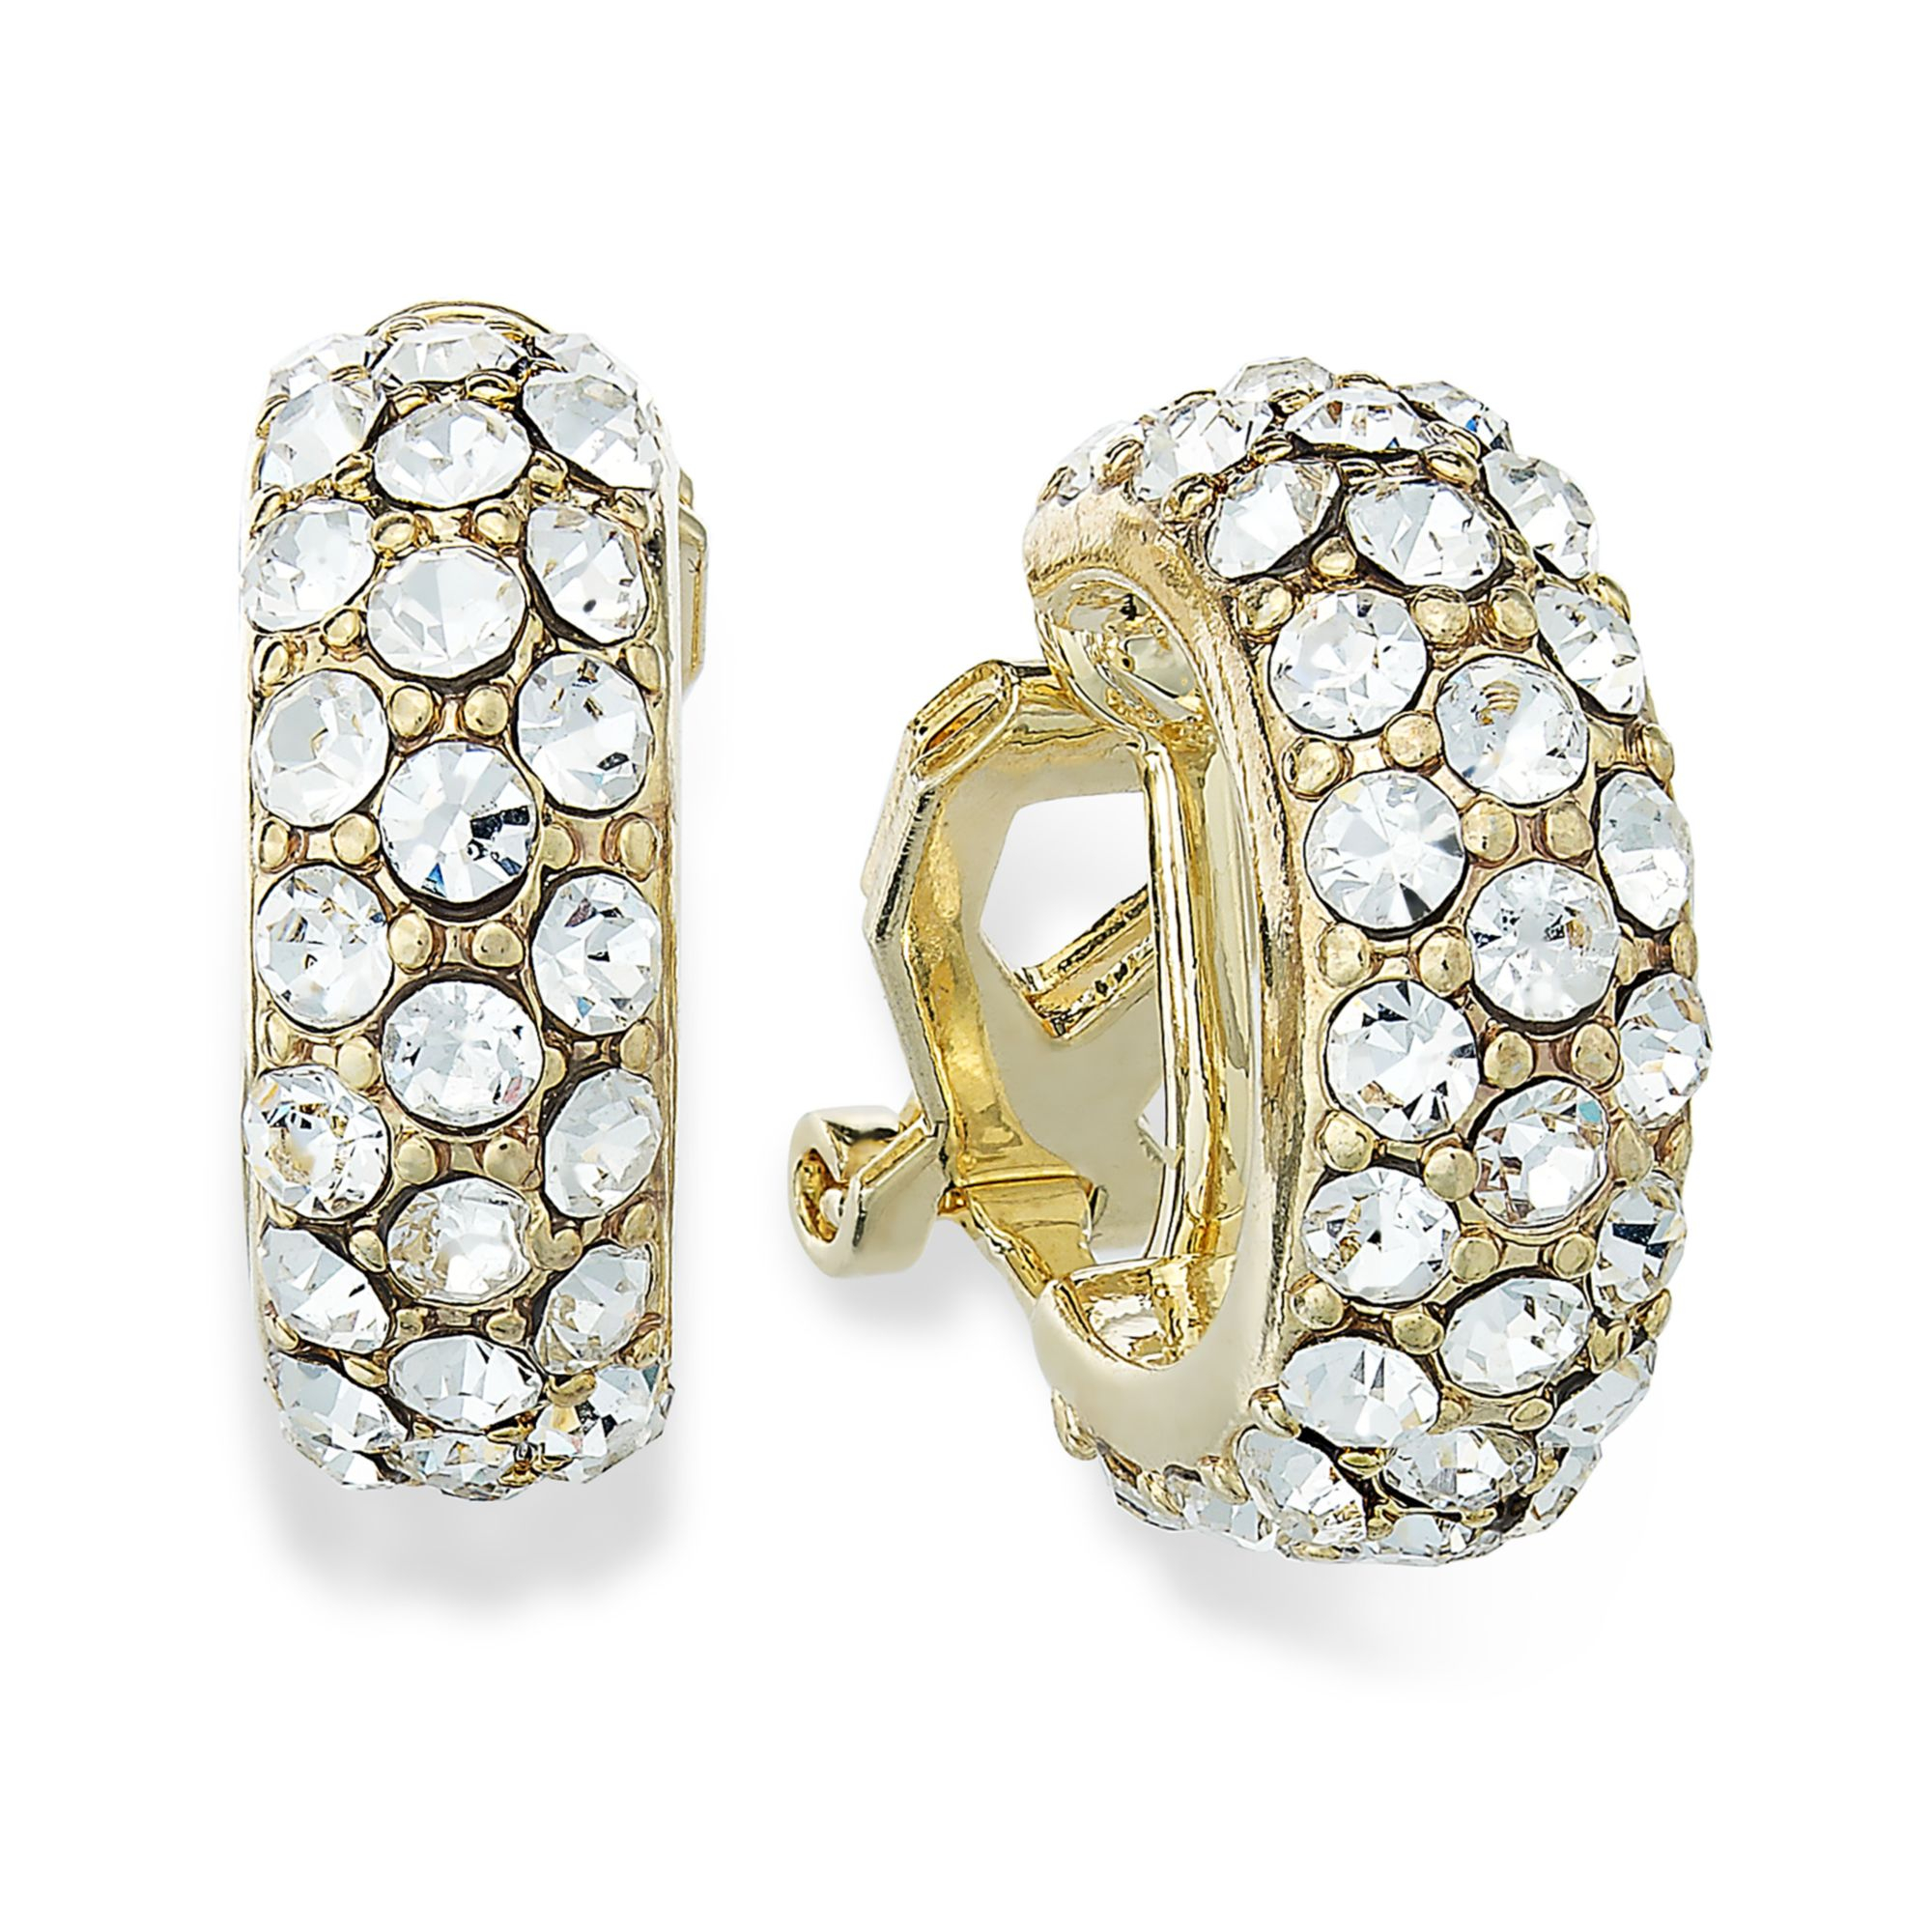 ralph clip on earrings by ralph 14k gold plated pave small 8192